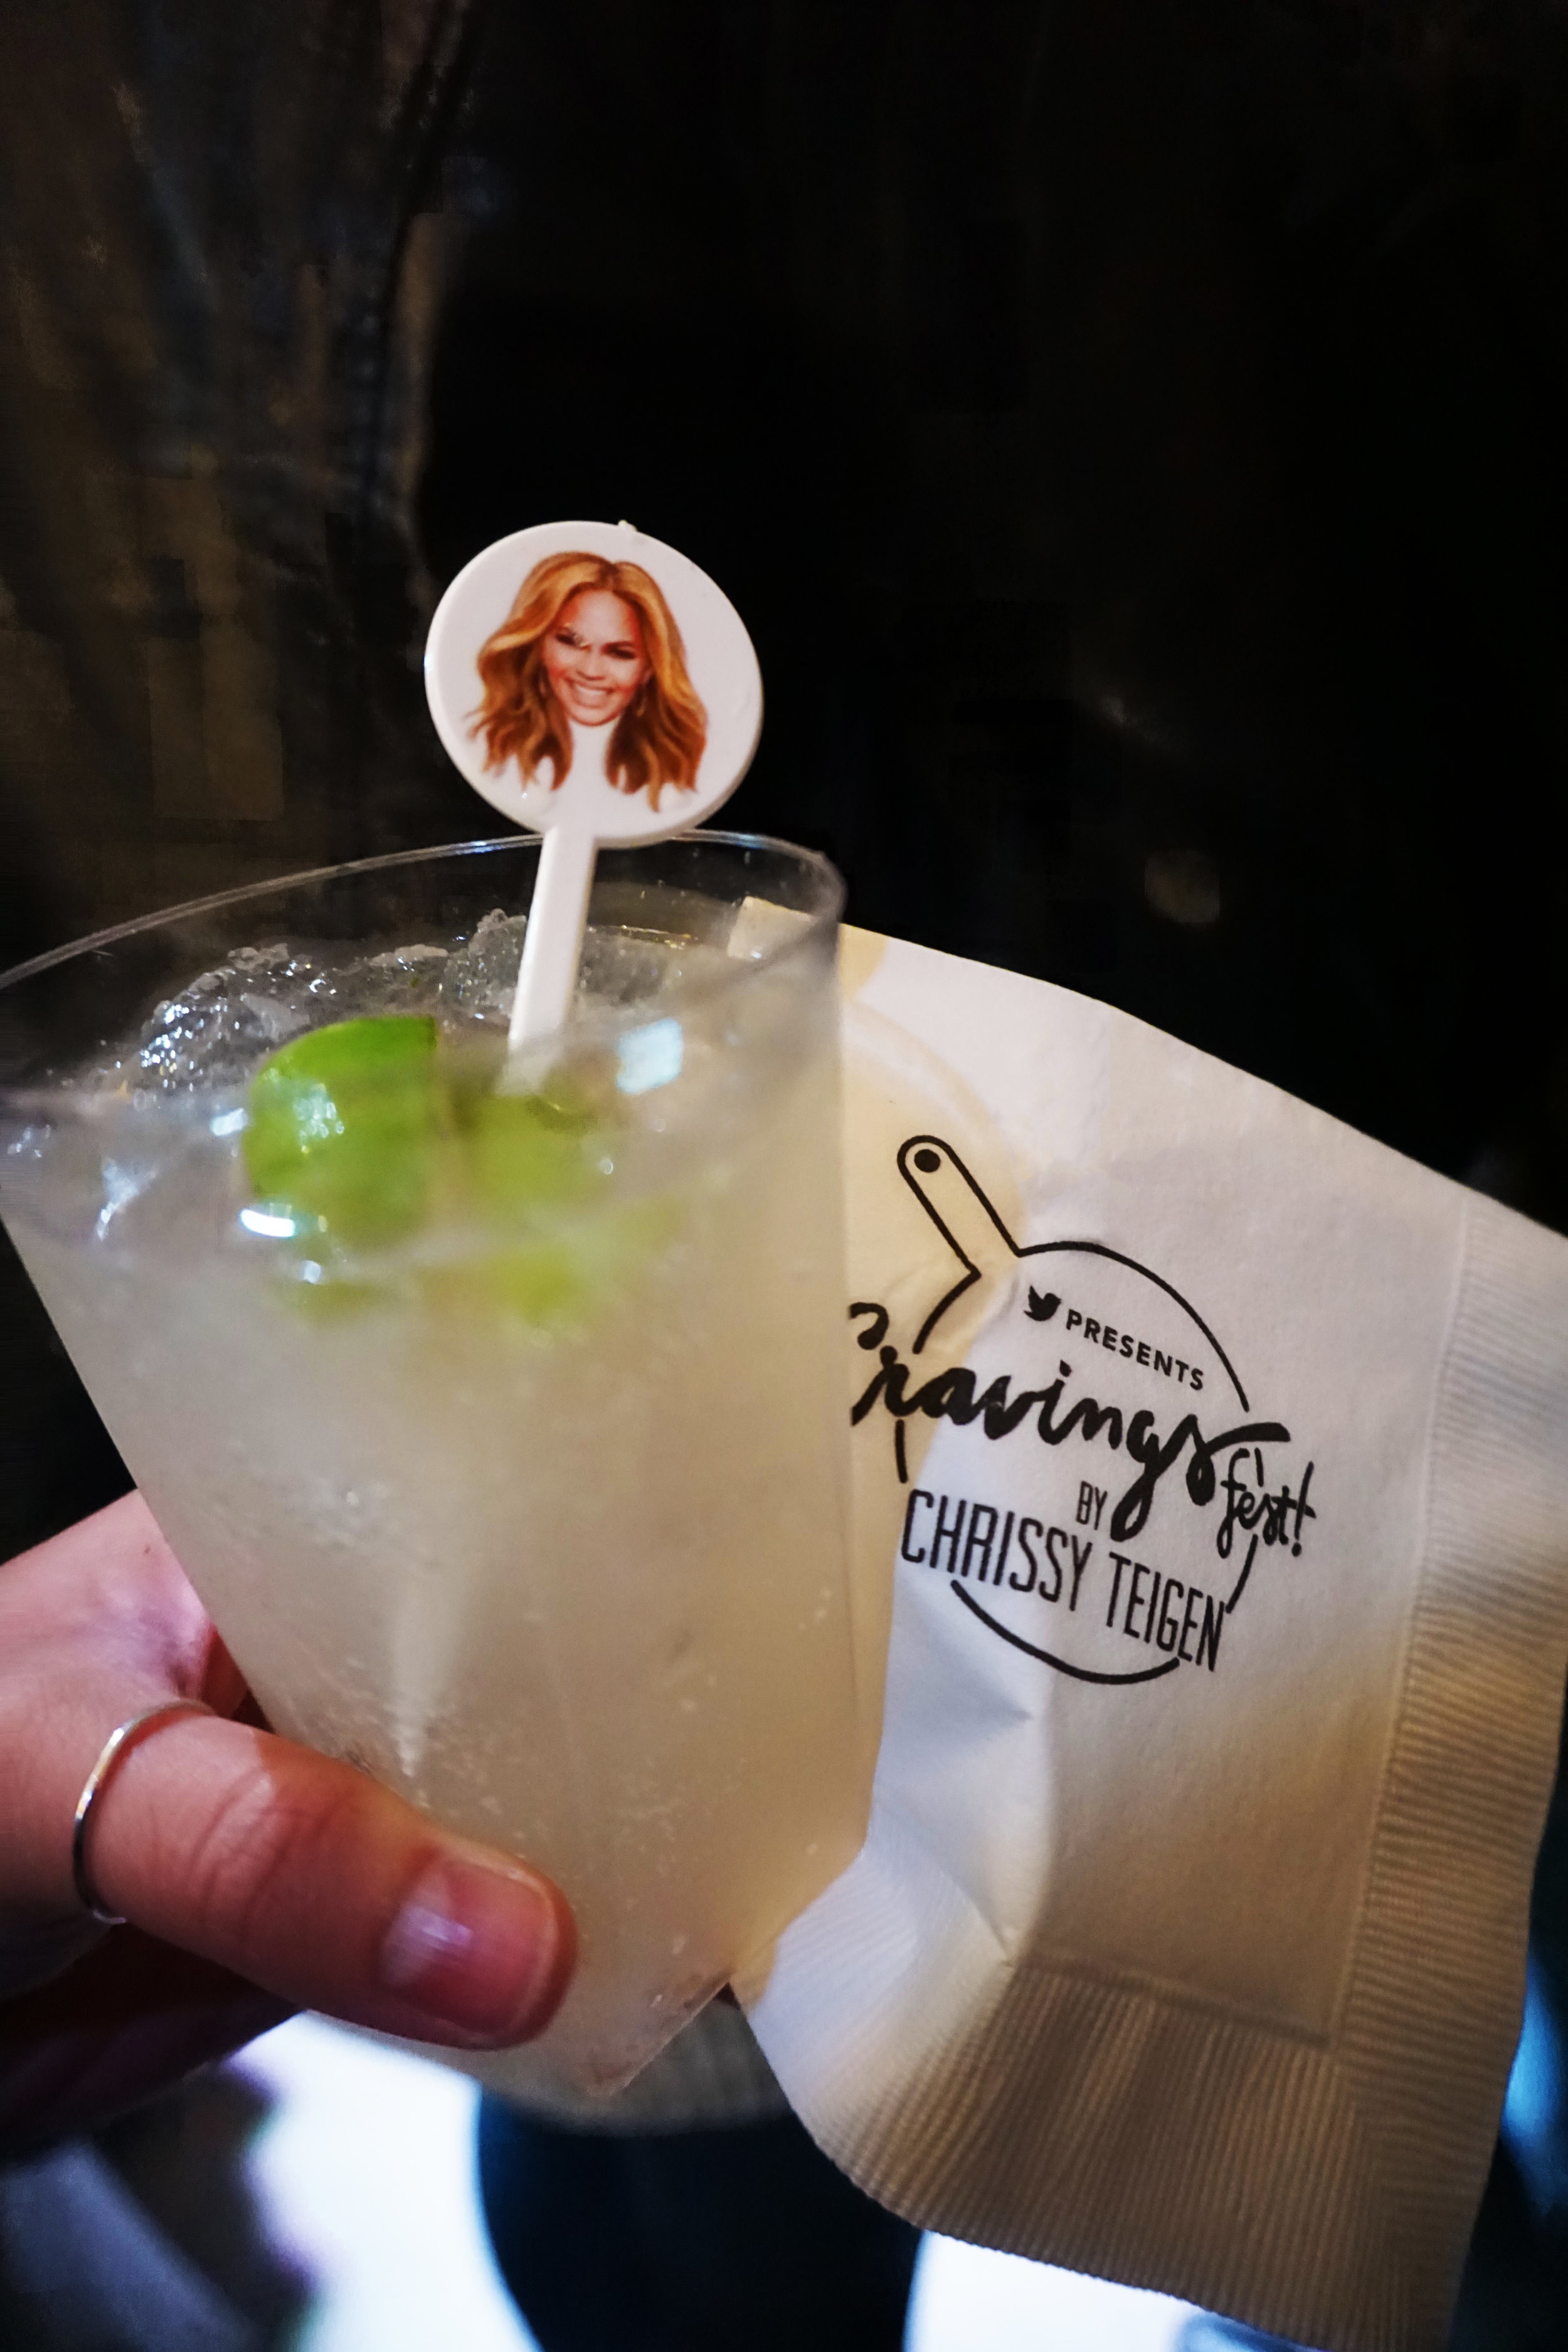 Having cocktail stirrers with your face on them at your own event is a Power Move™.